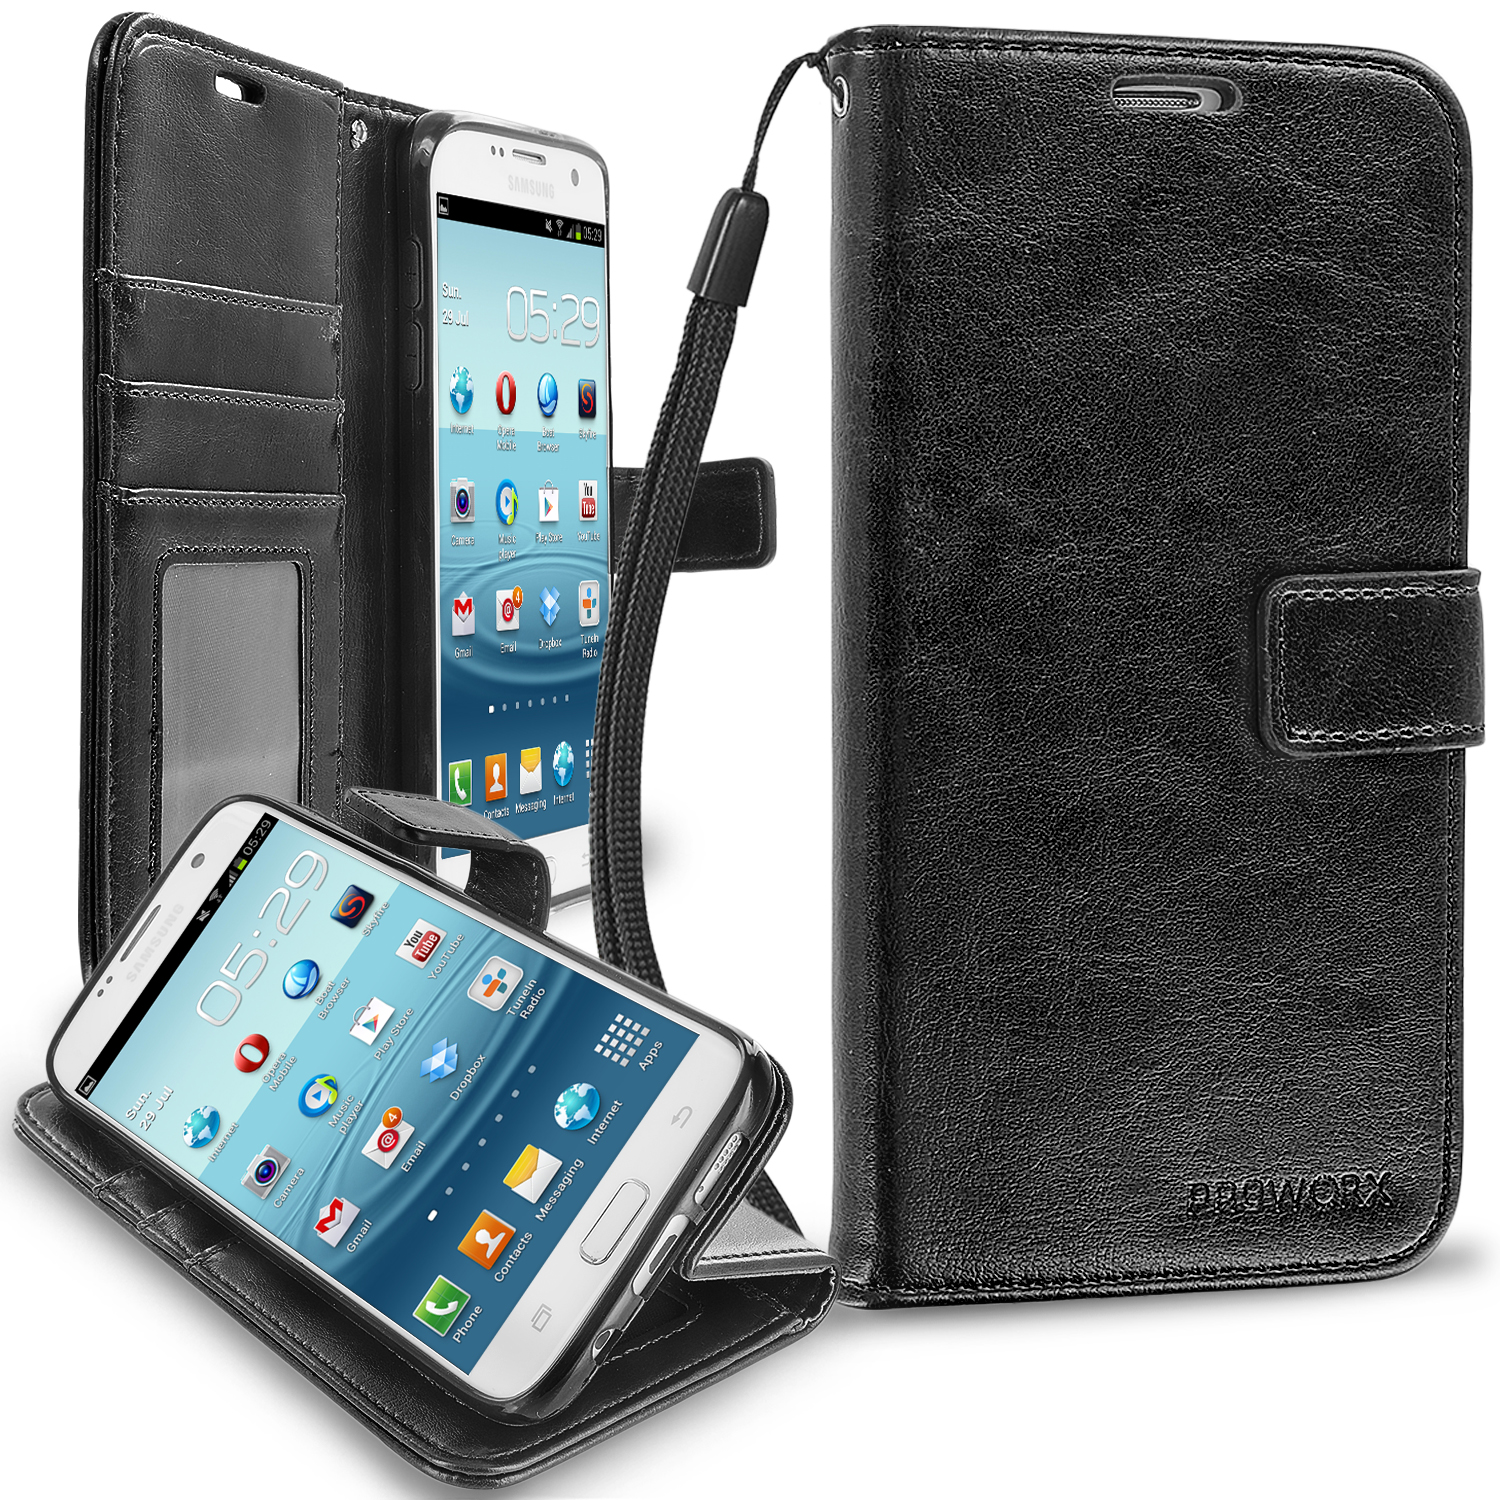 Samsung Galaxy S7 Edge Black ProWorx Wallet Case Luxury PU Leather Case Cover With Card Slots & Stand